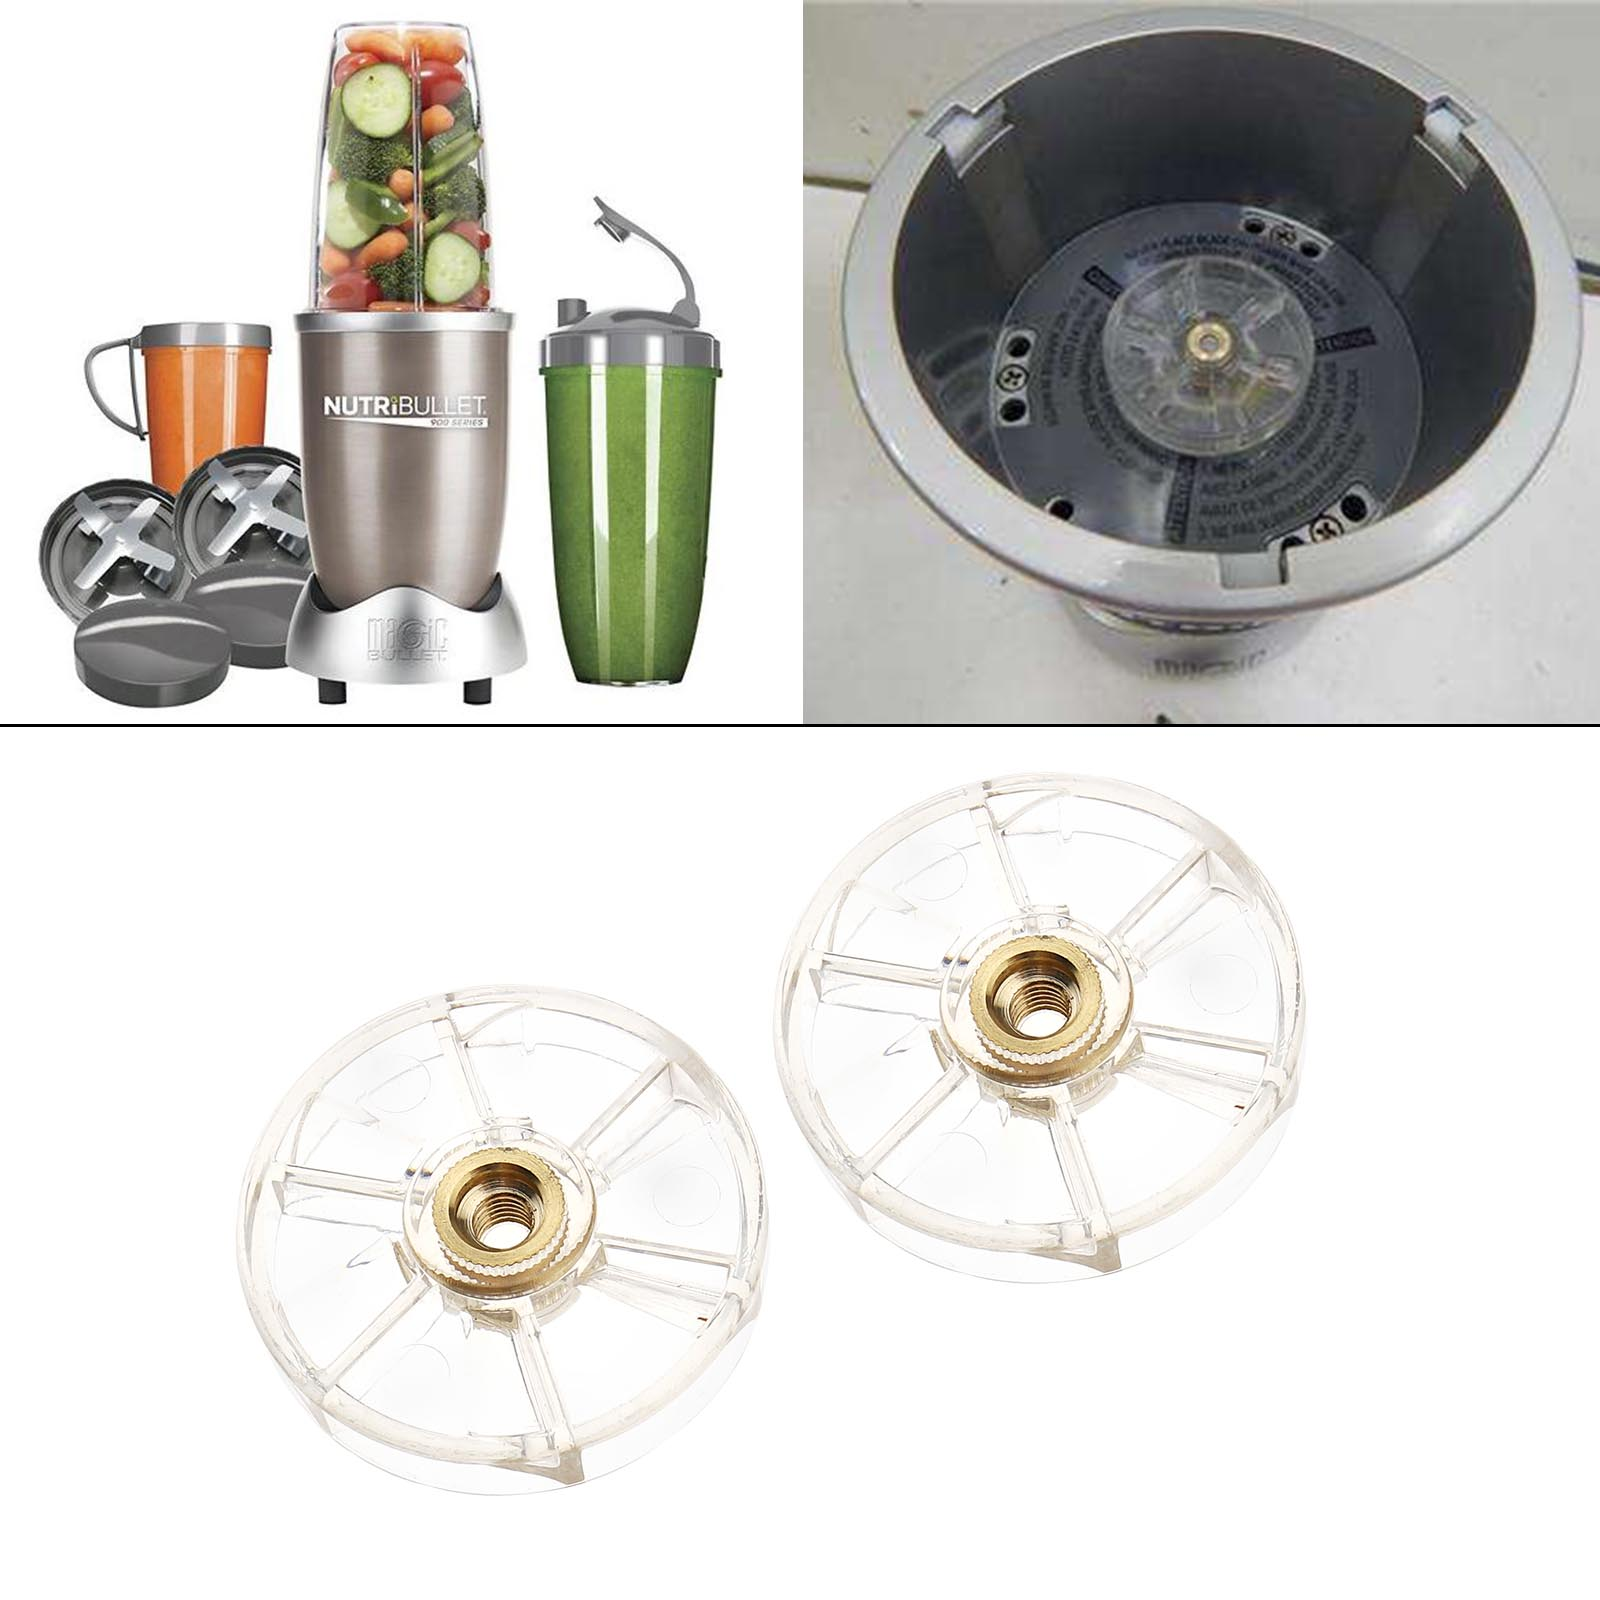 1//2 Pcs Replacement Spare Parts for Nutribullet Top Base Gear Blender 600W 900W